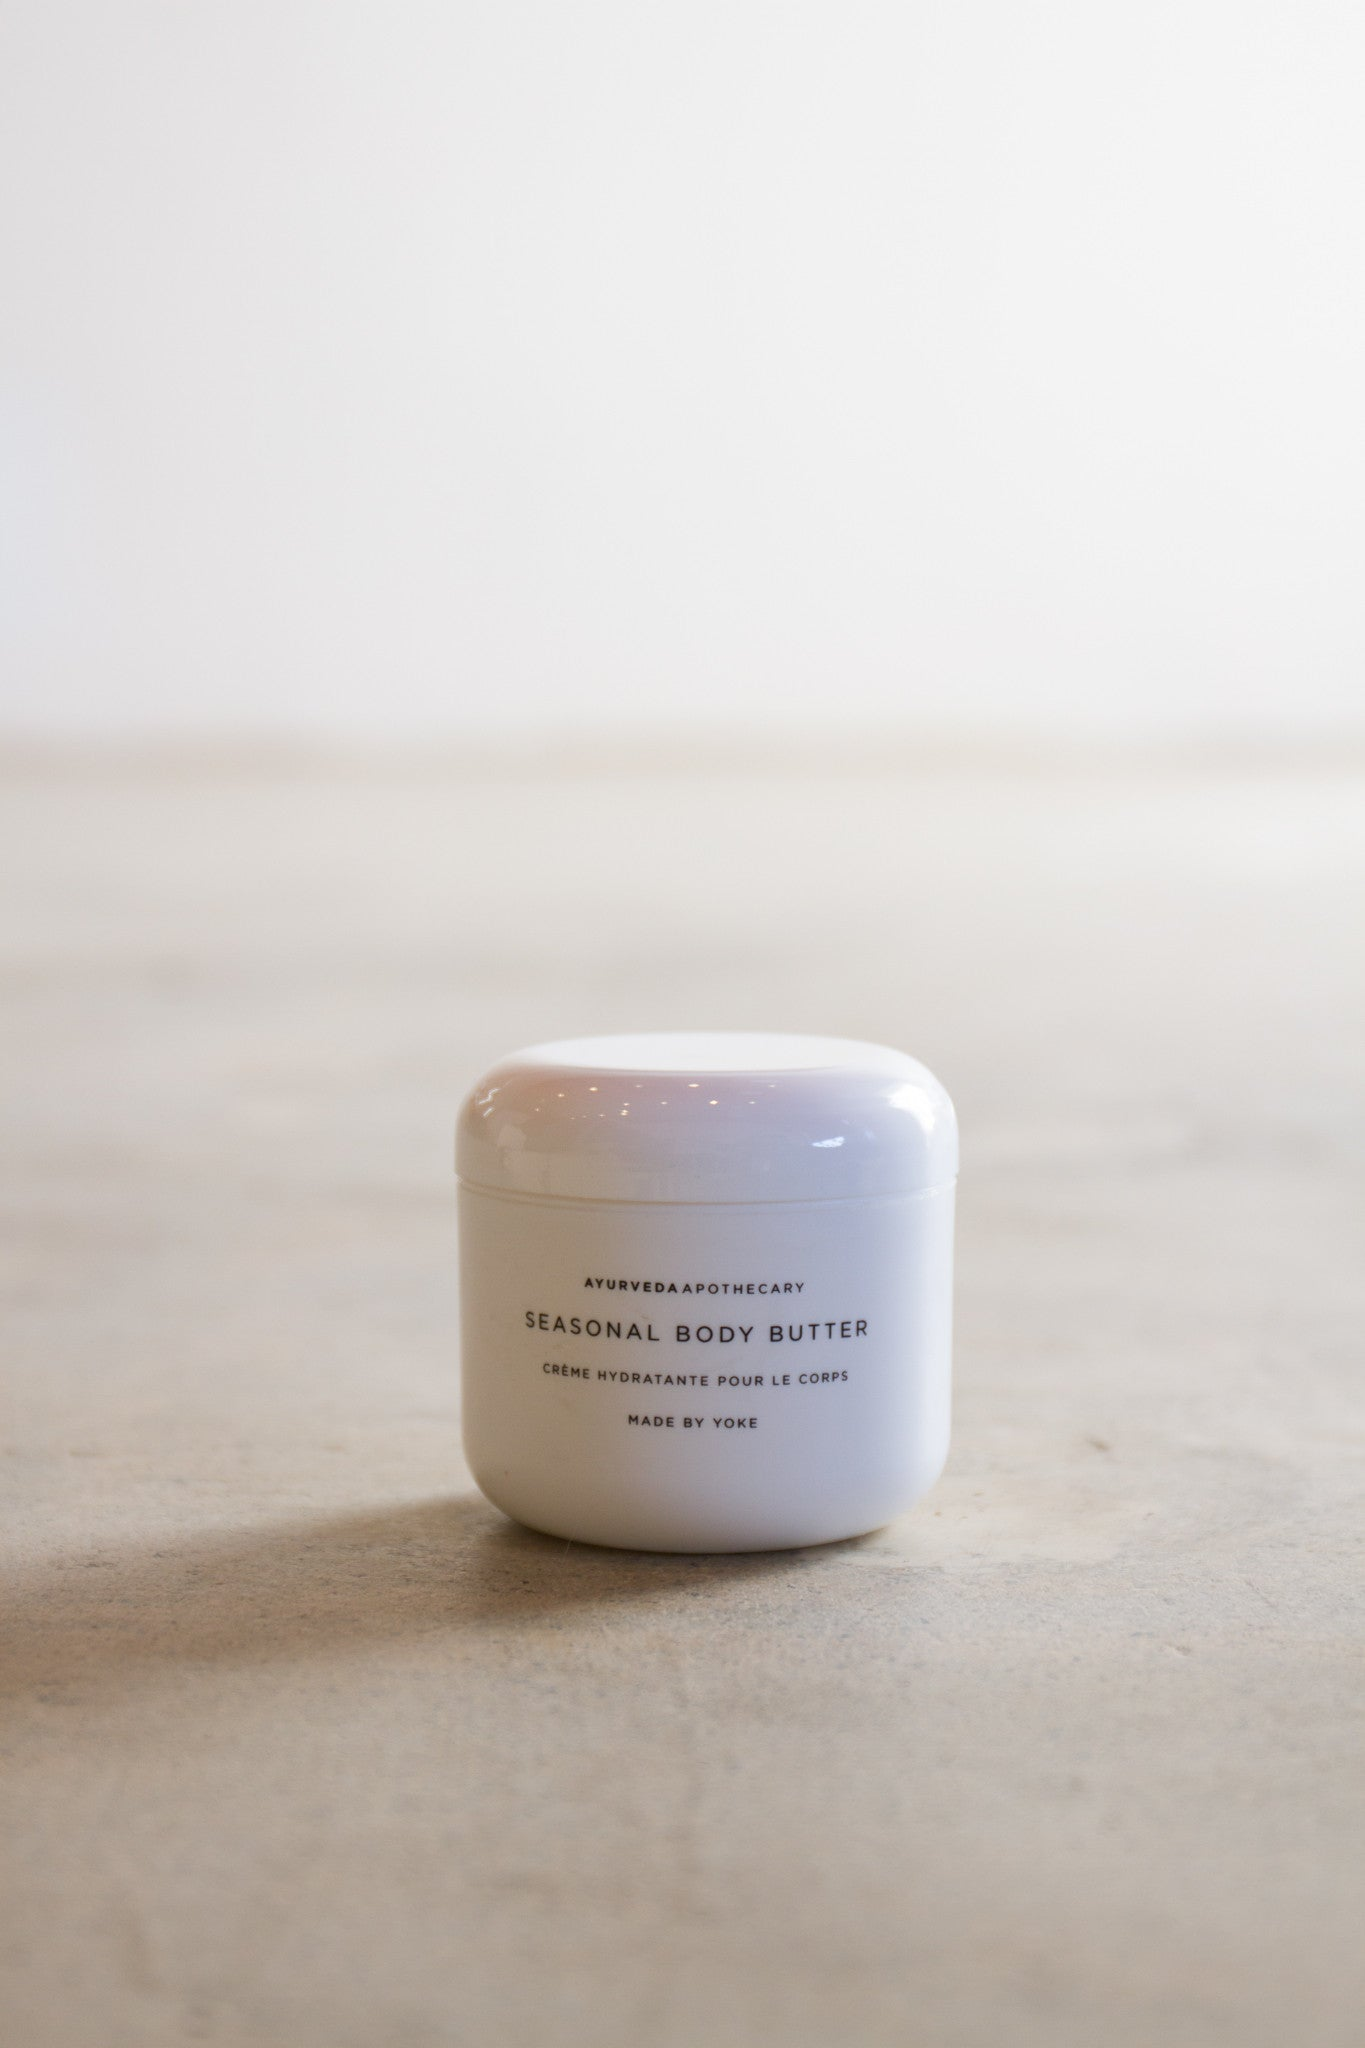 Seasonal Body Butter